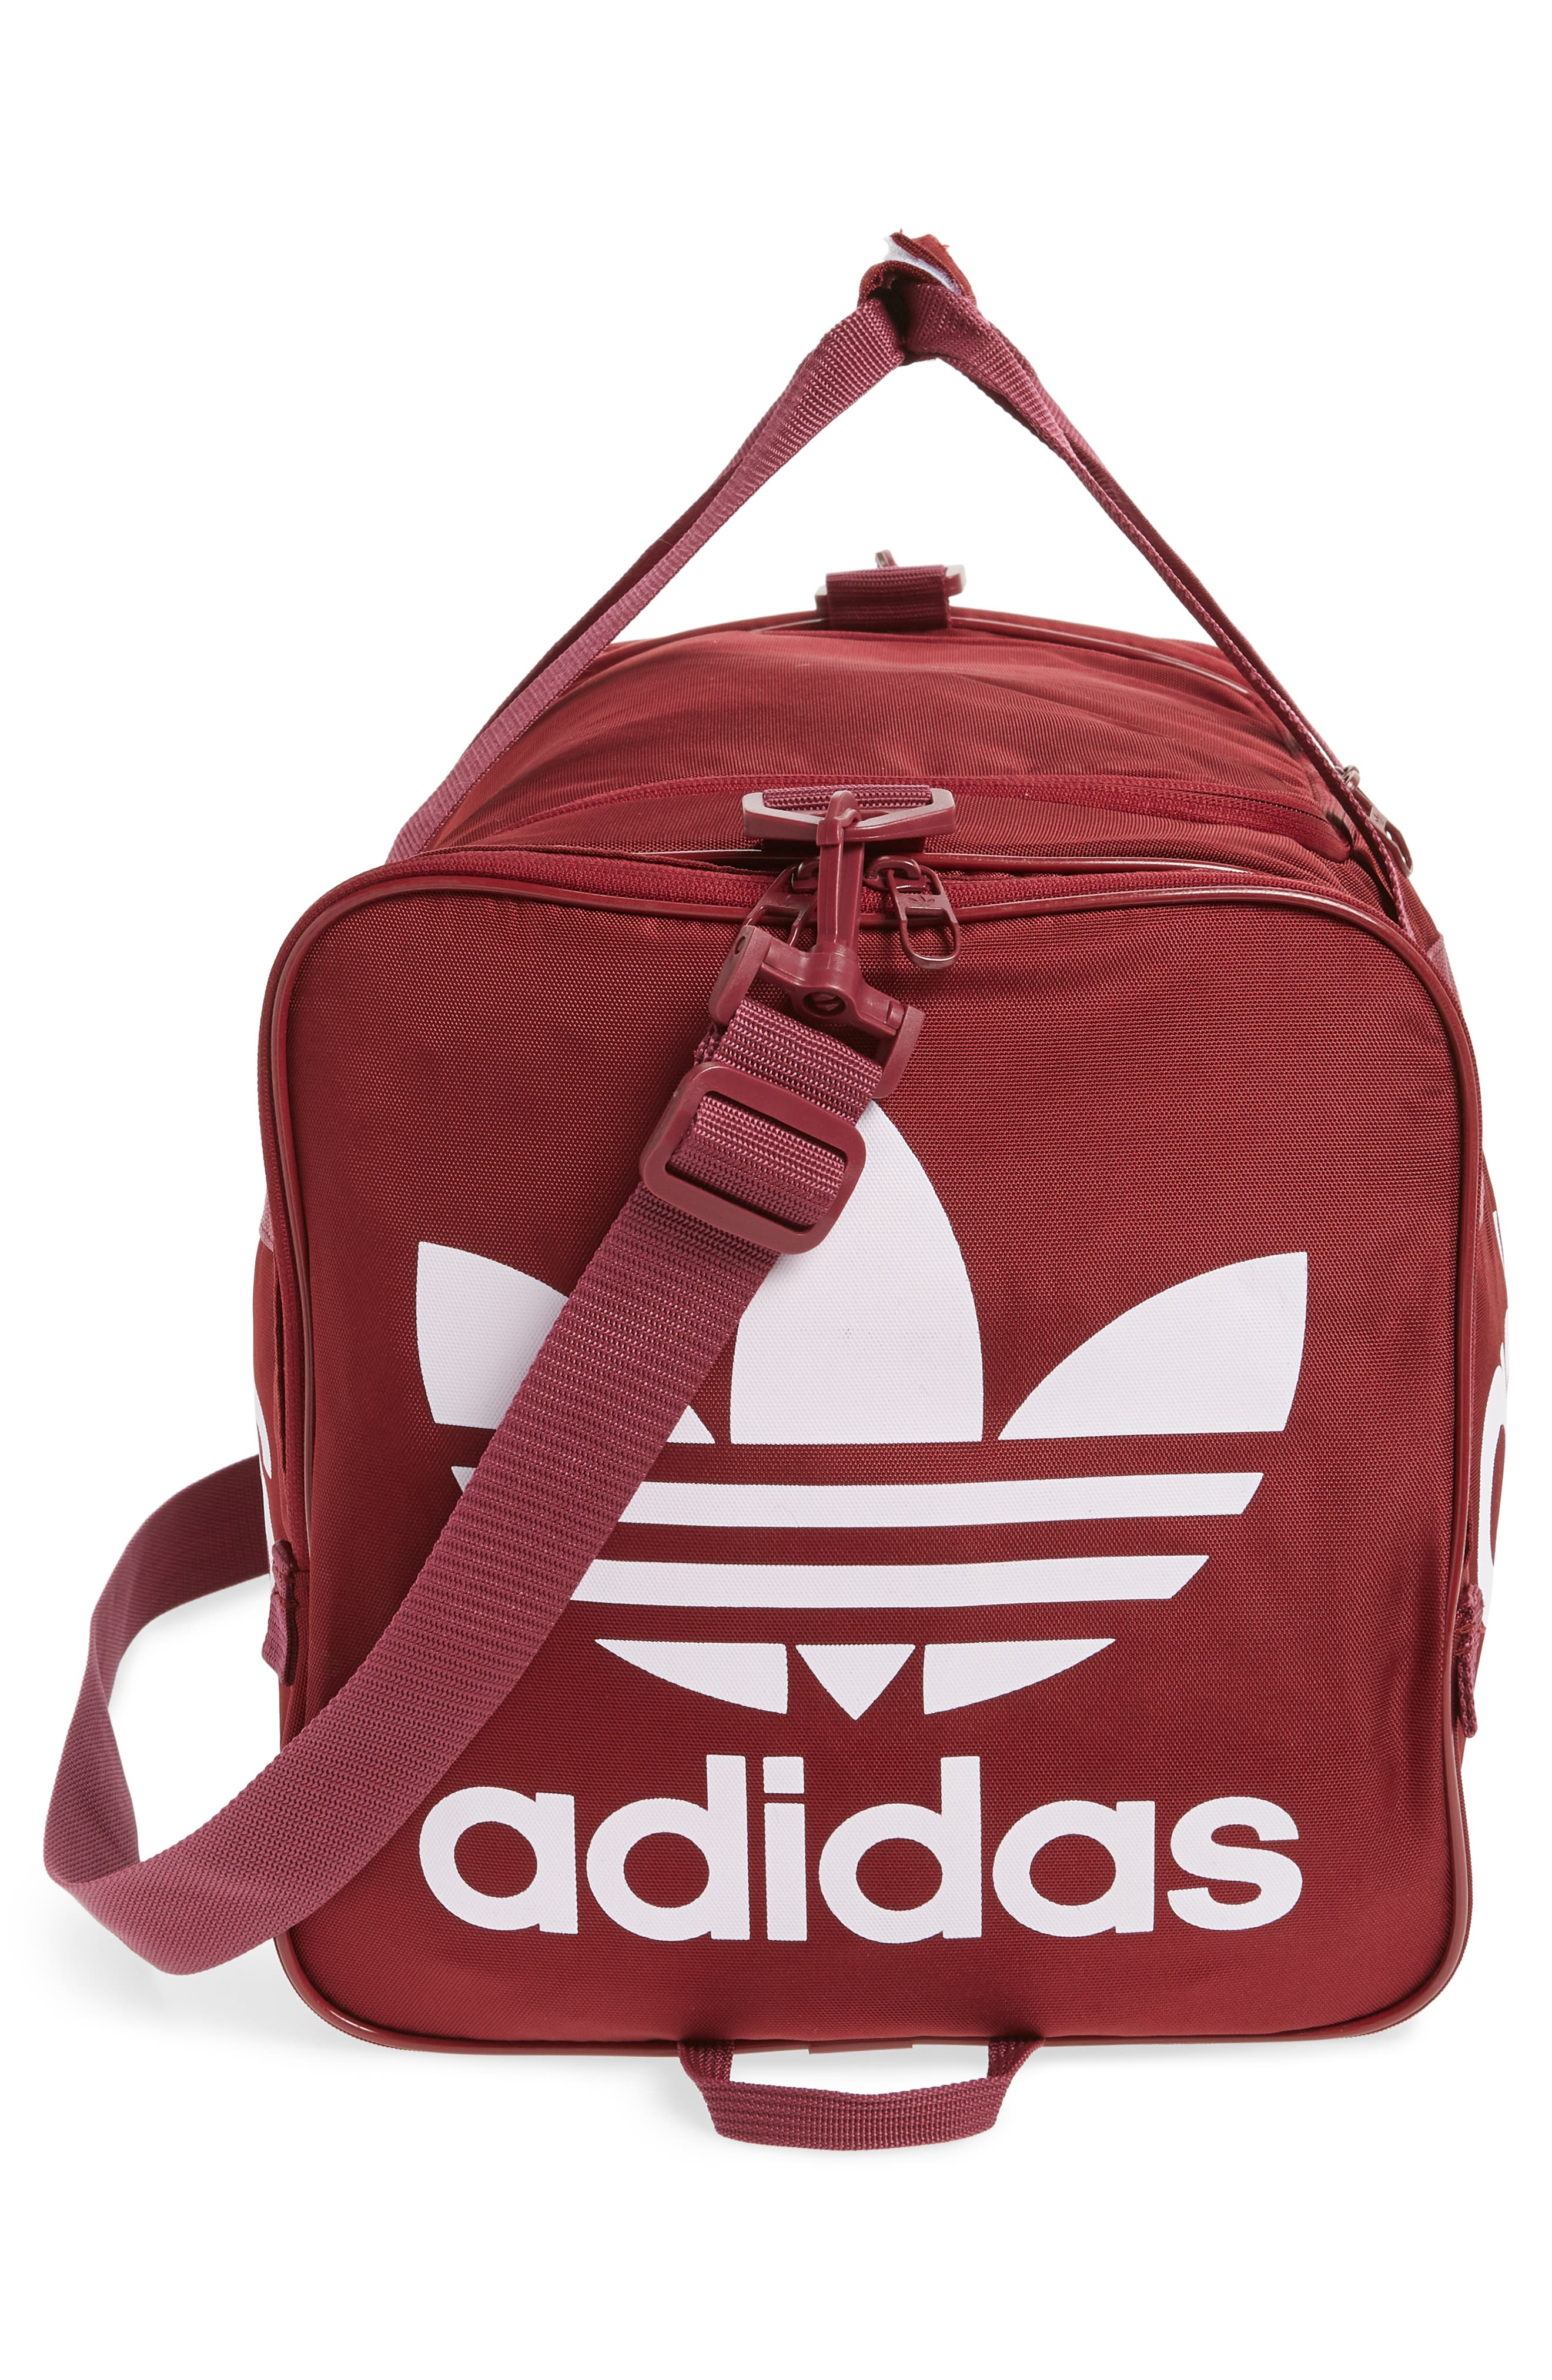 adidas Original Santiago Duffel Bag,                             Alternate thumbnail 5, color,                             COLLEGIATE BURGUNDY/ WHITE